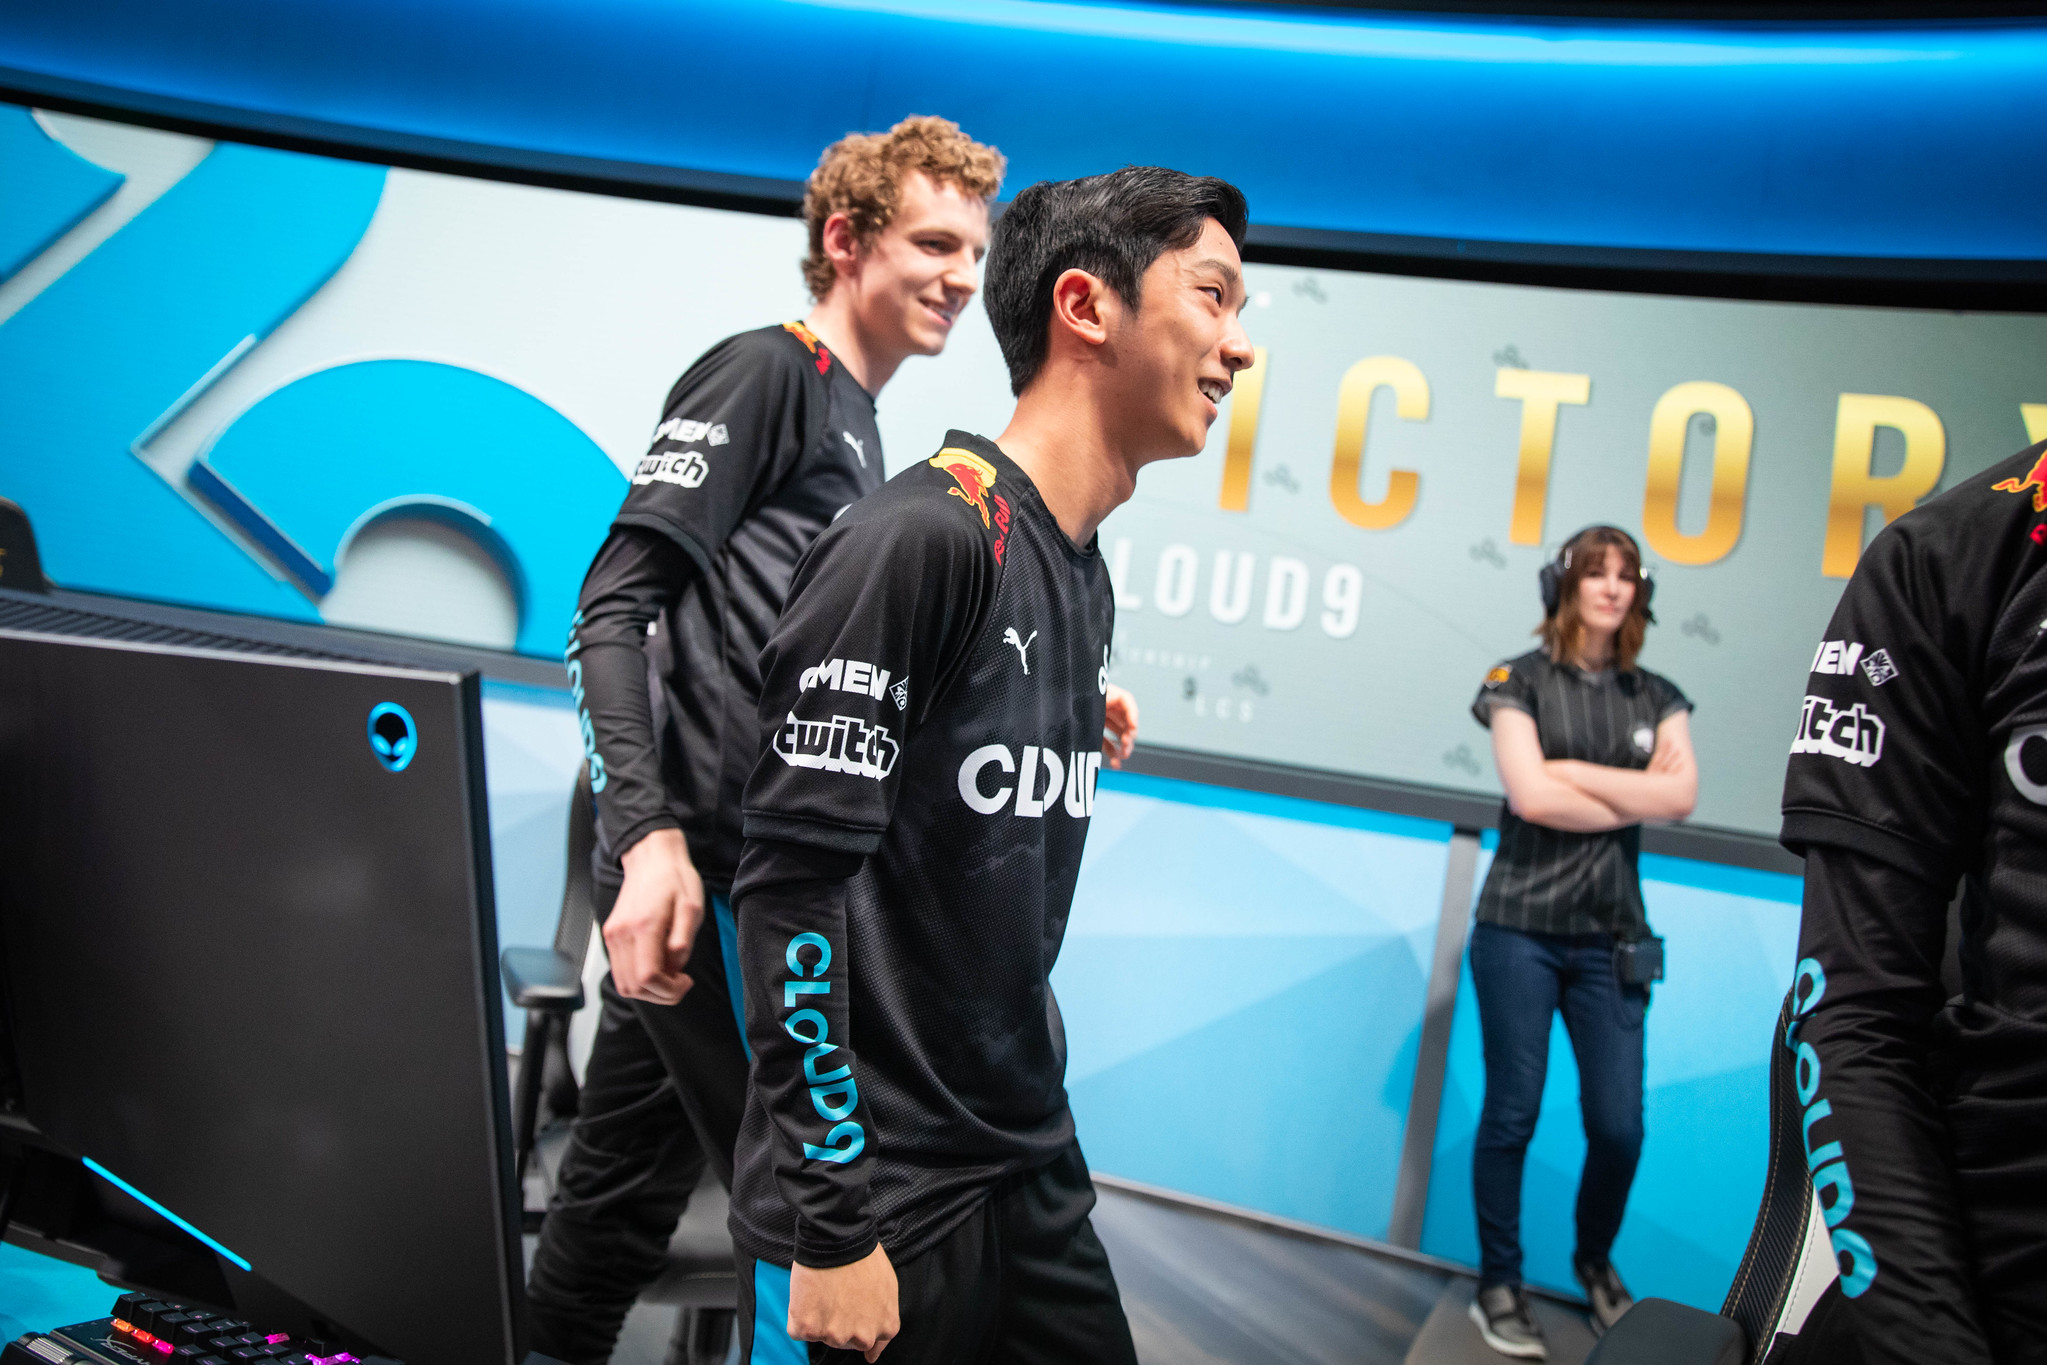 Pobelter's return to CLG kicks off with loss to Cloud9 during week 5 of LCS Spring Split